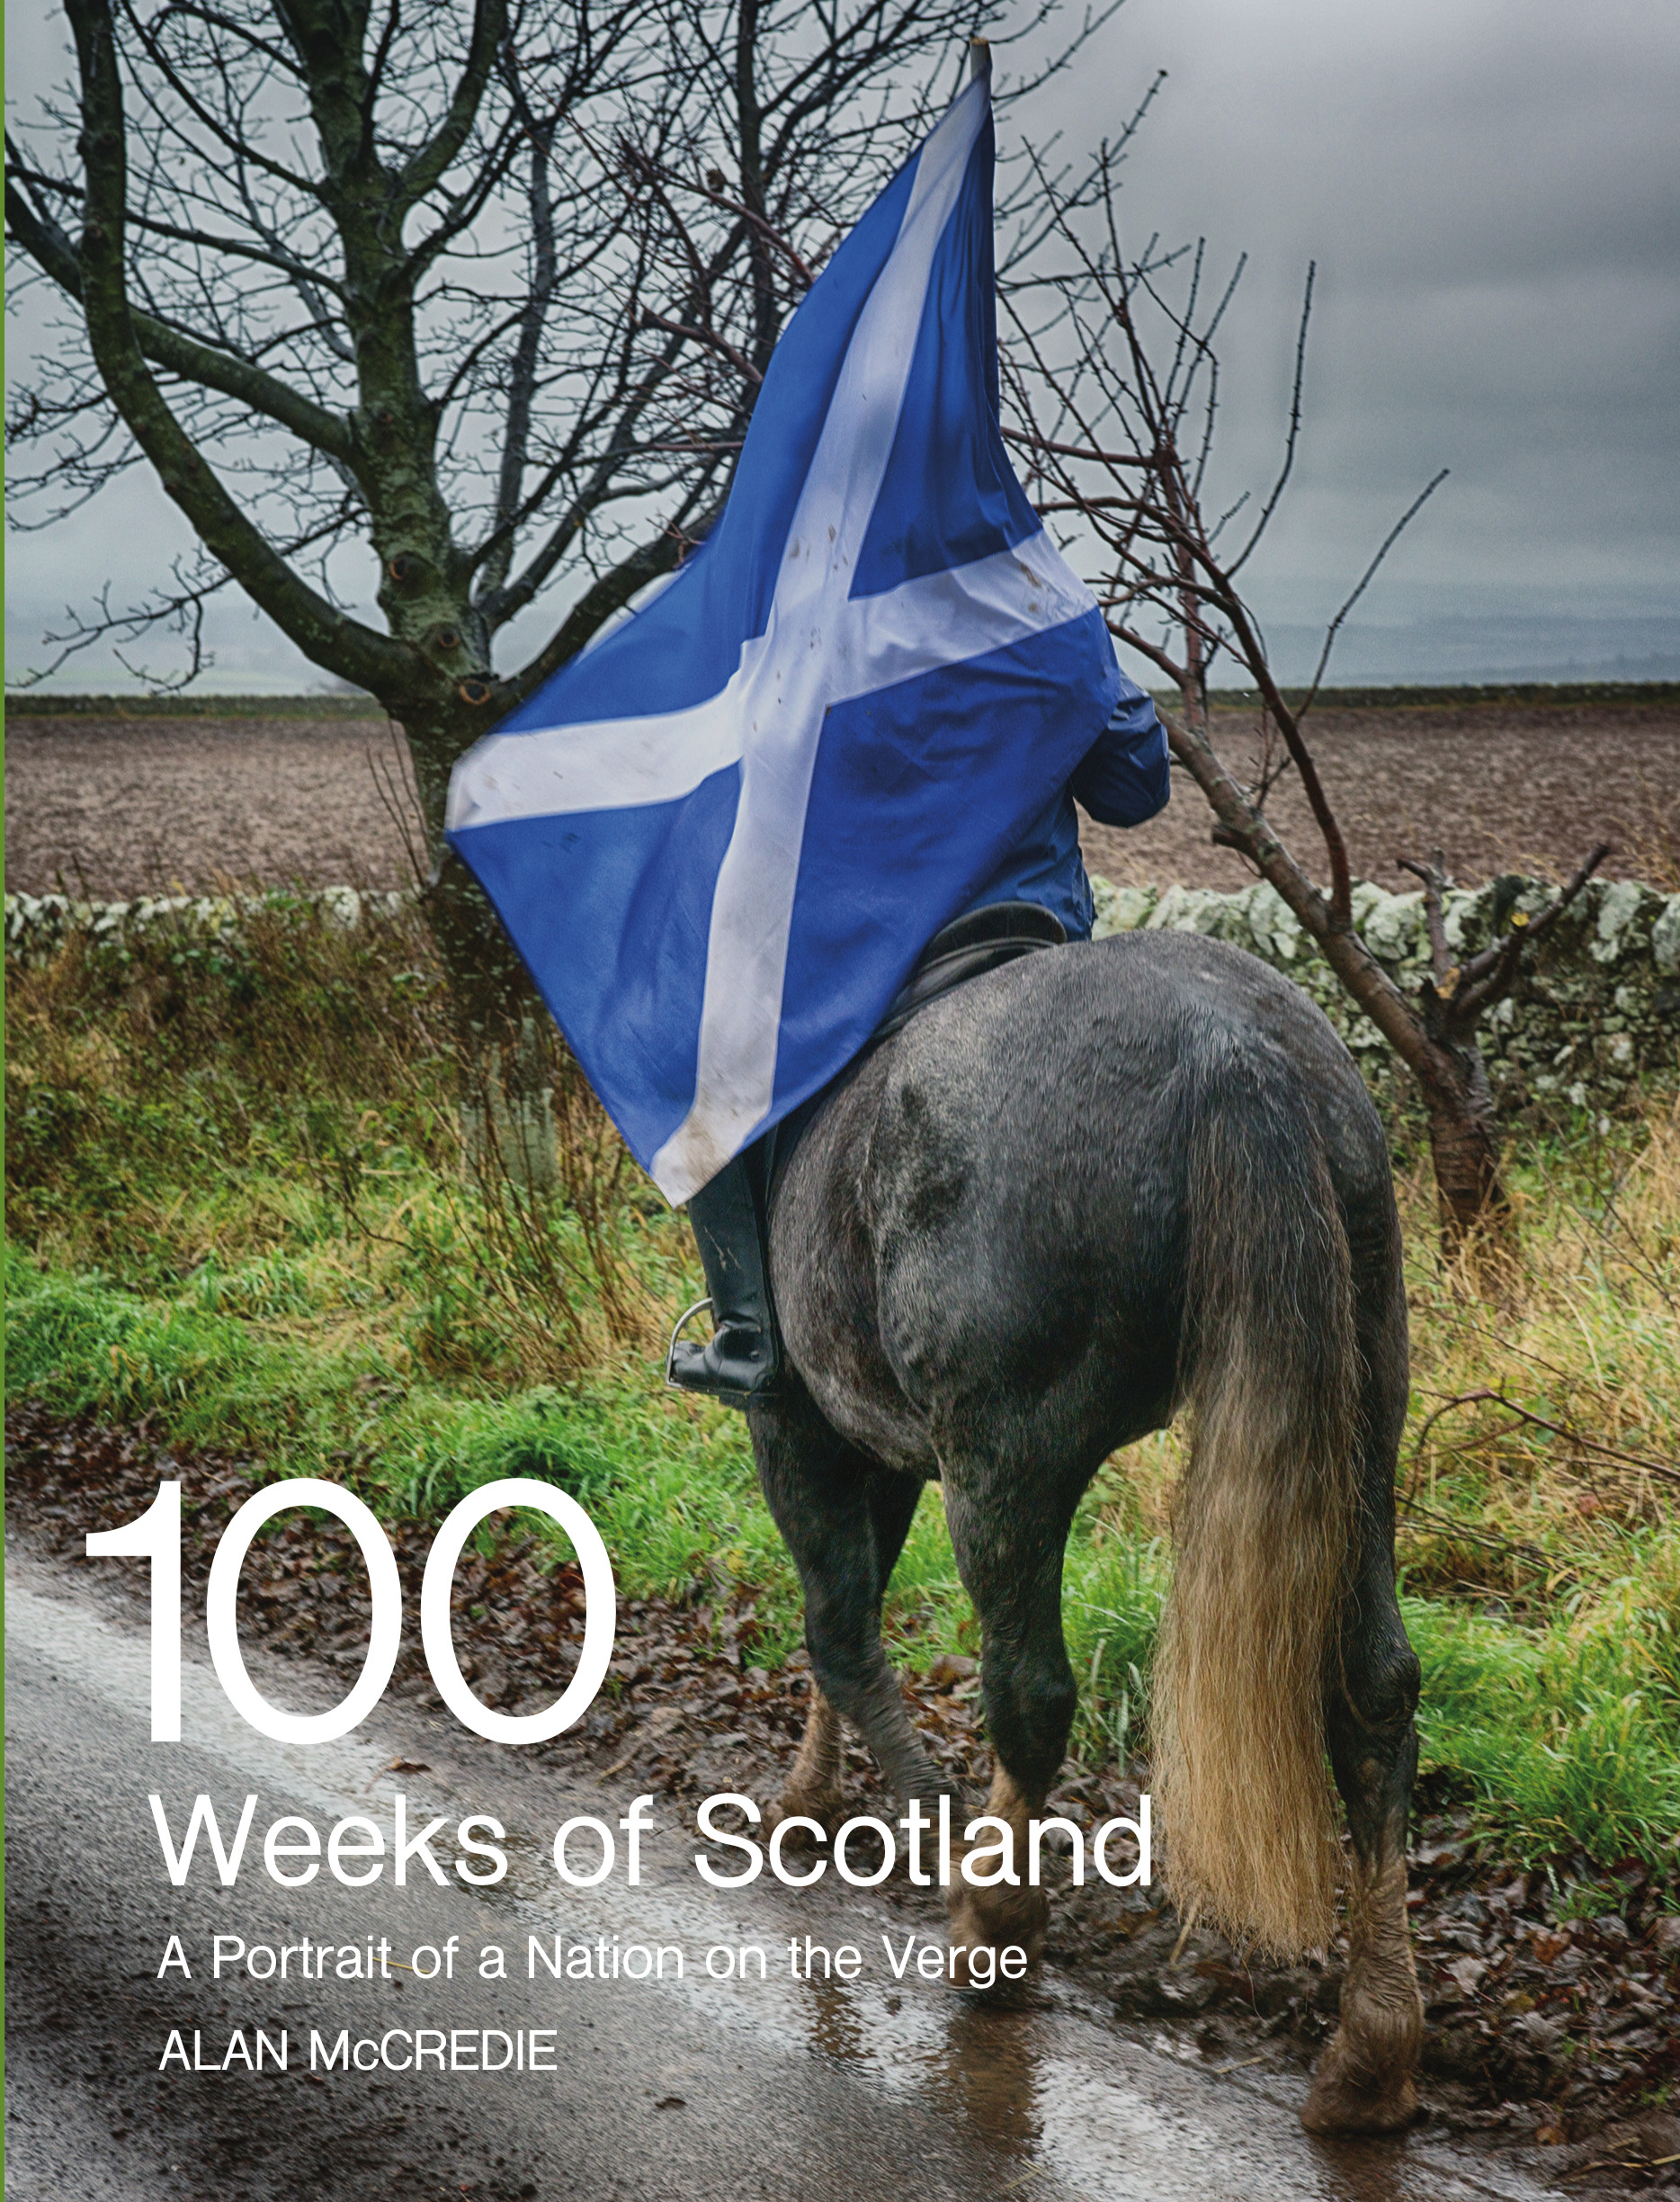 100 Weeks of Scotland